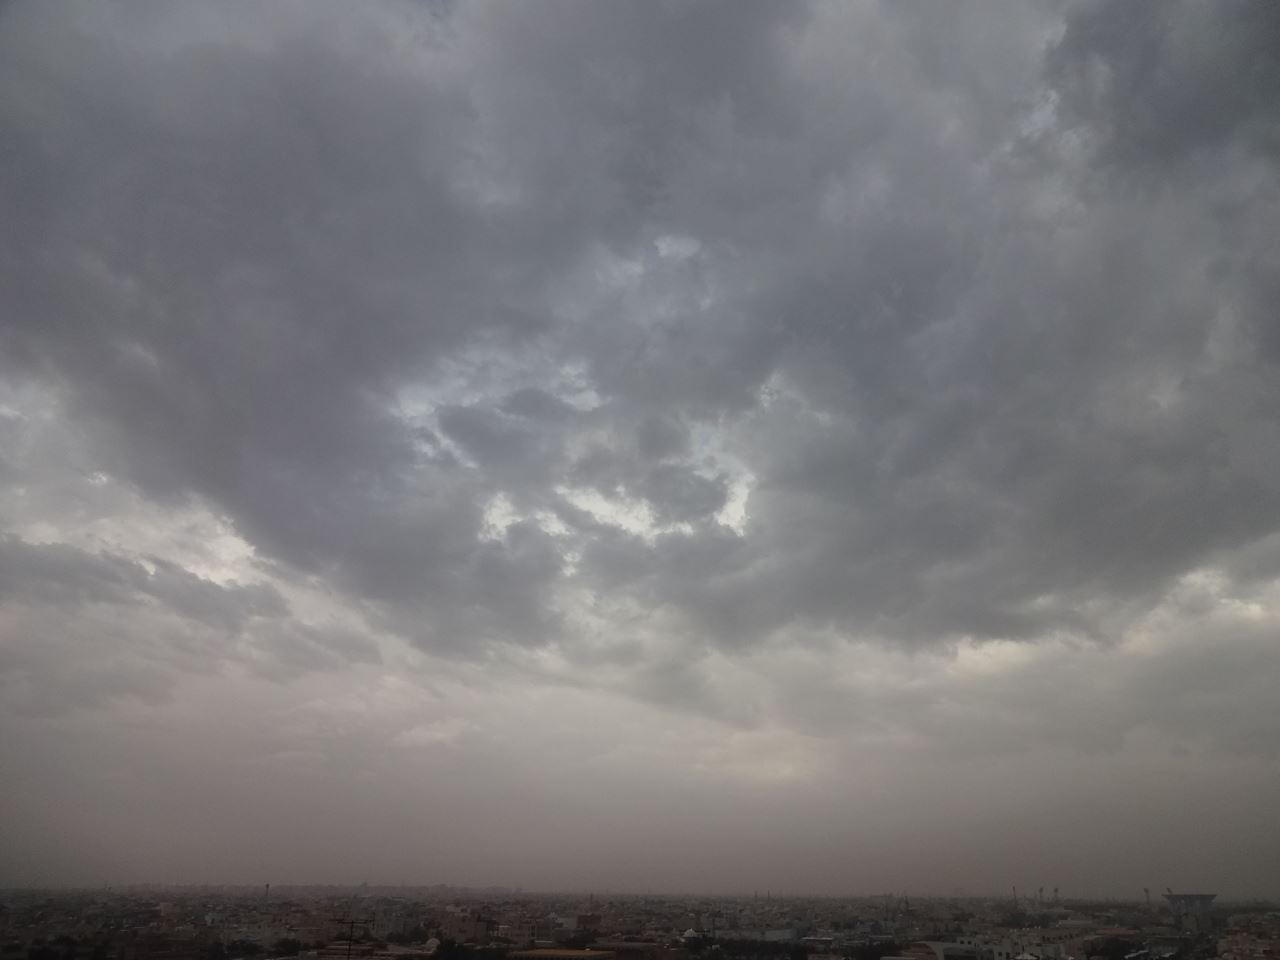 A Rainy morning in Kuwait